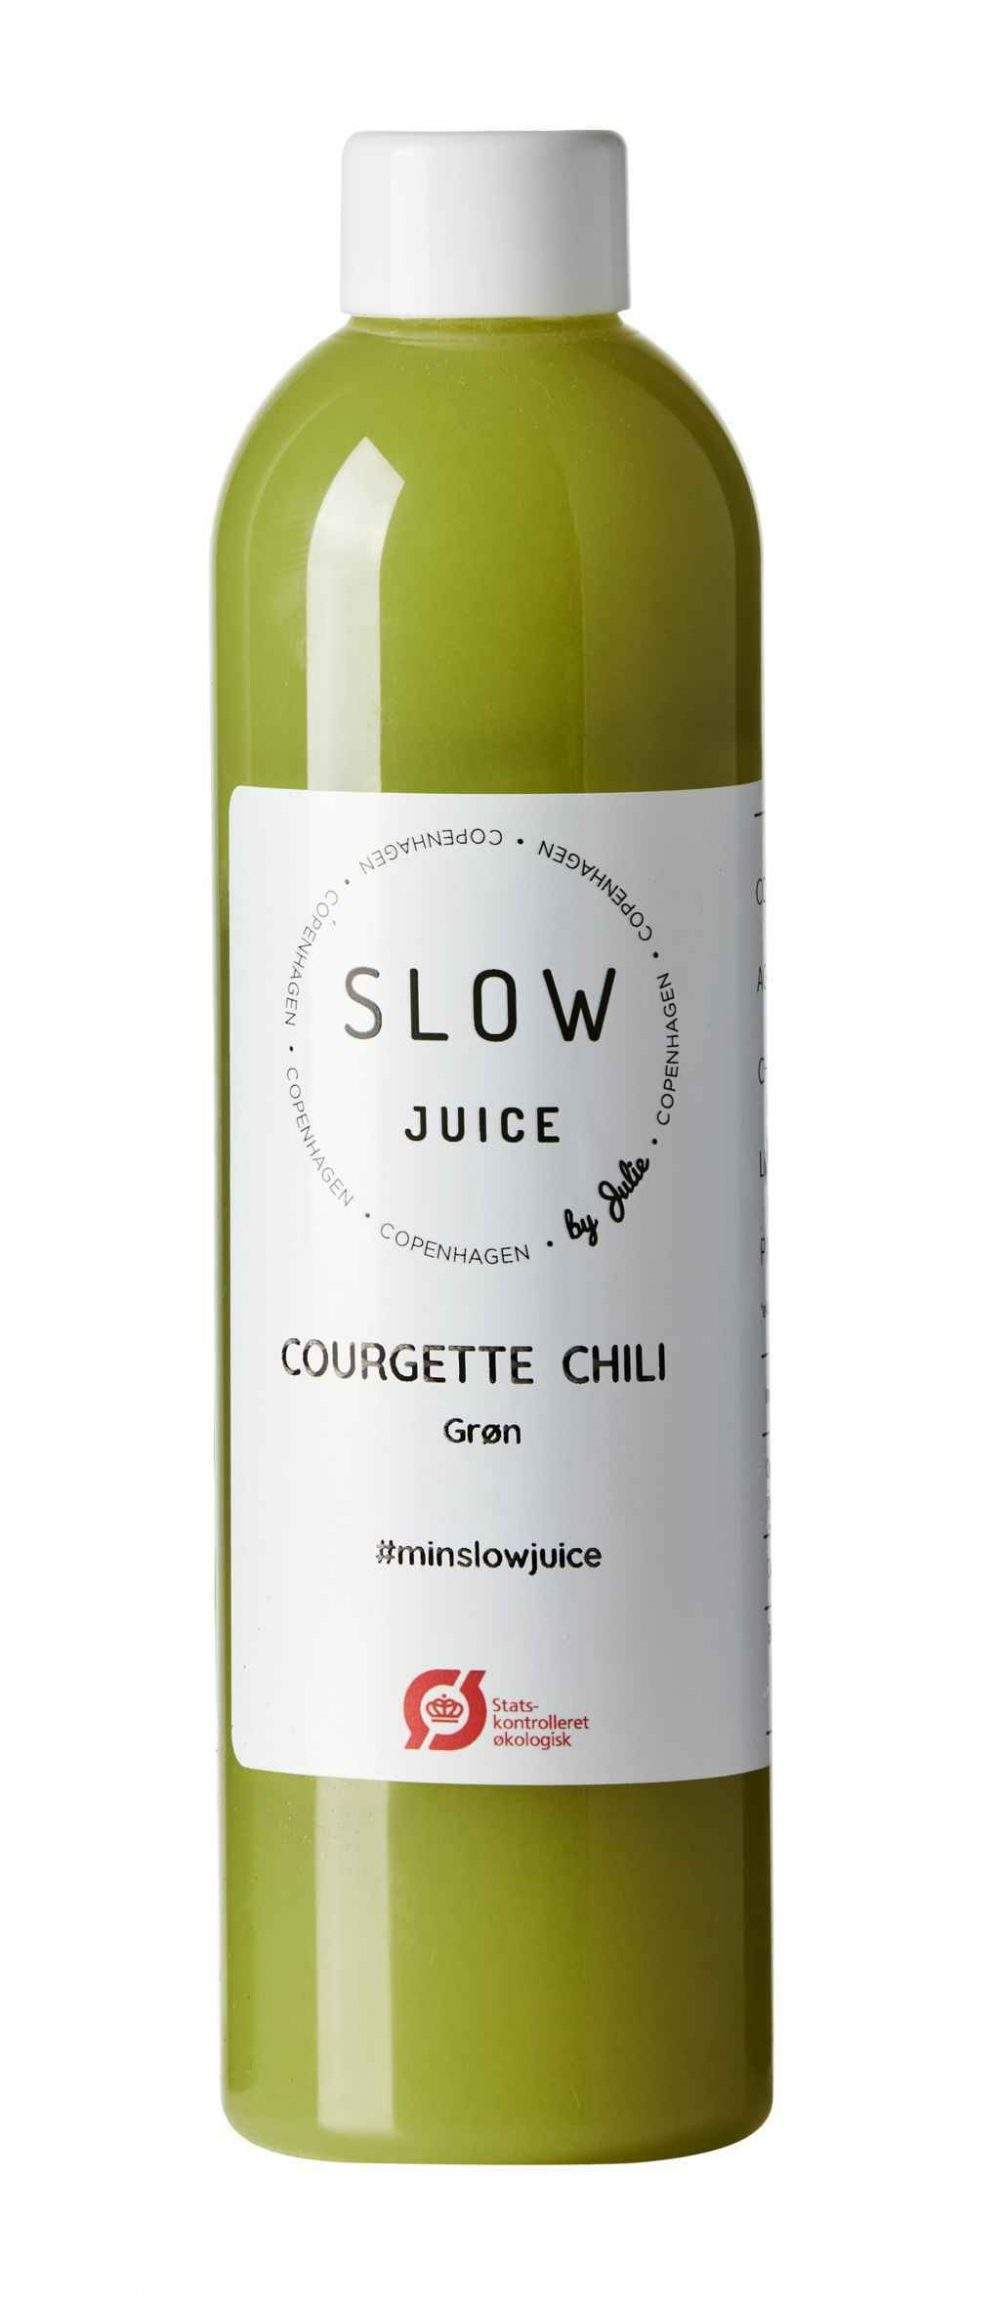 courgette chili Slowjuice paa hvid baggrund